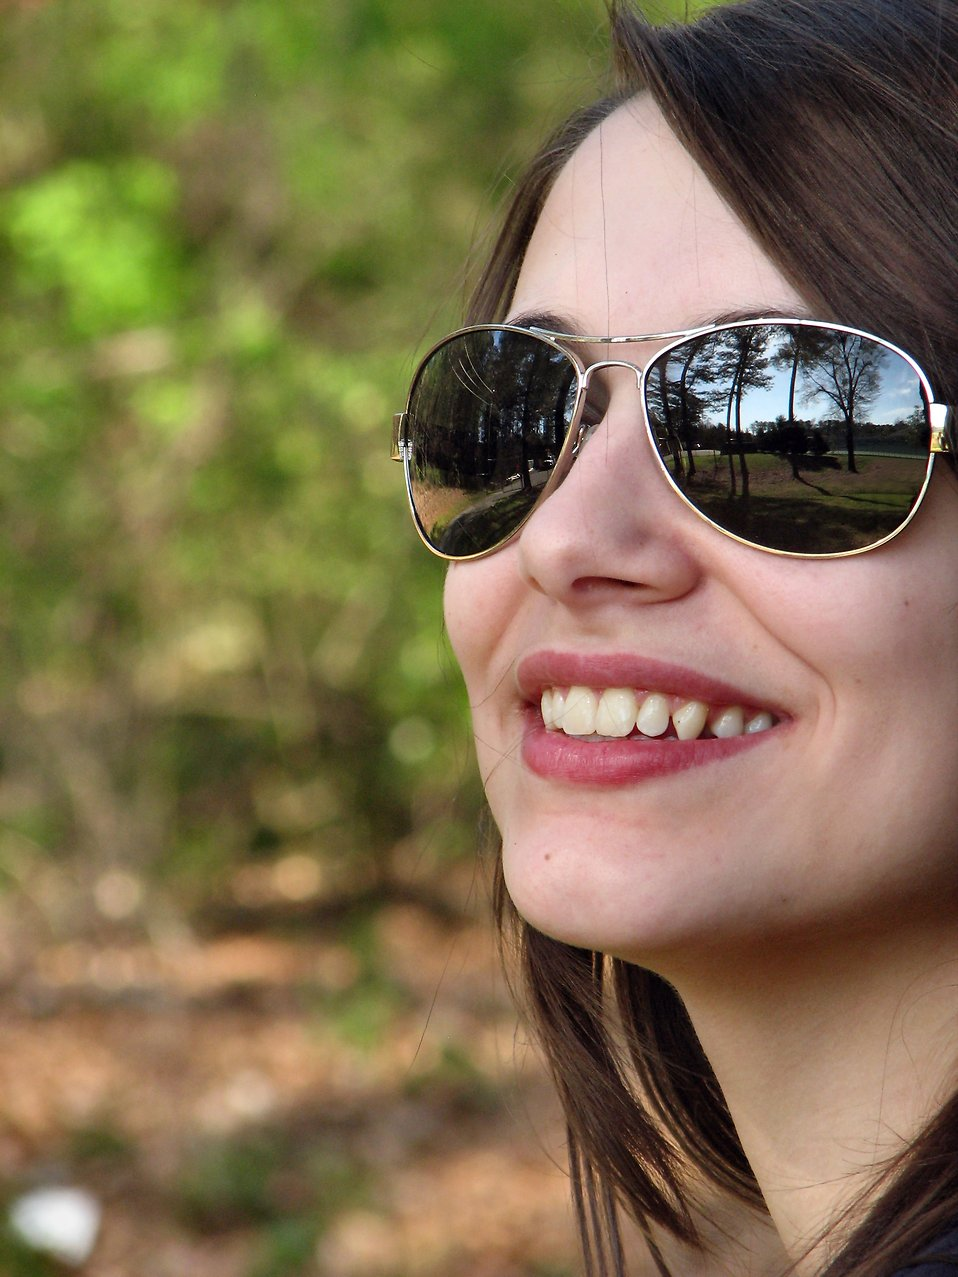 Close-up portrait of a beautiful girl posing outdoors : Free Stock Photo